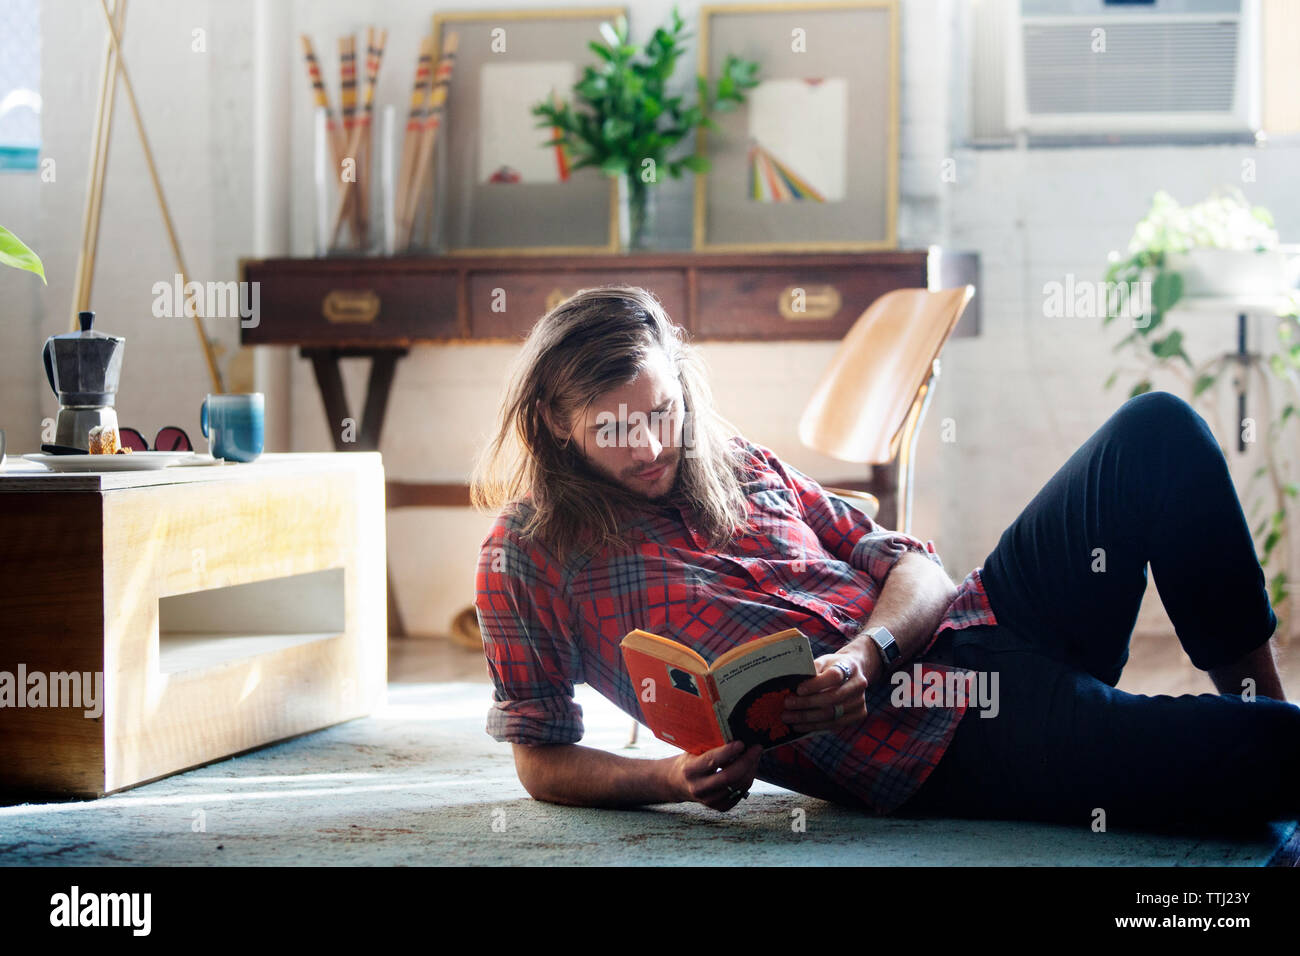 Man reading book while lying on floor at home - Stock Image